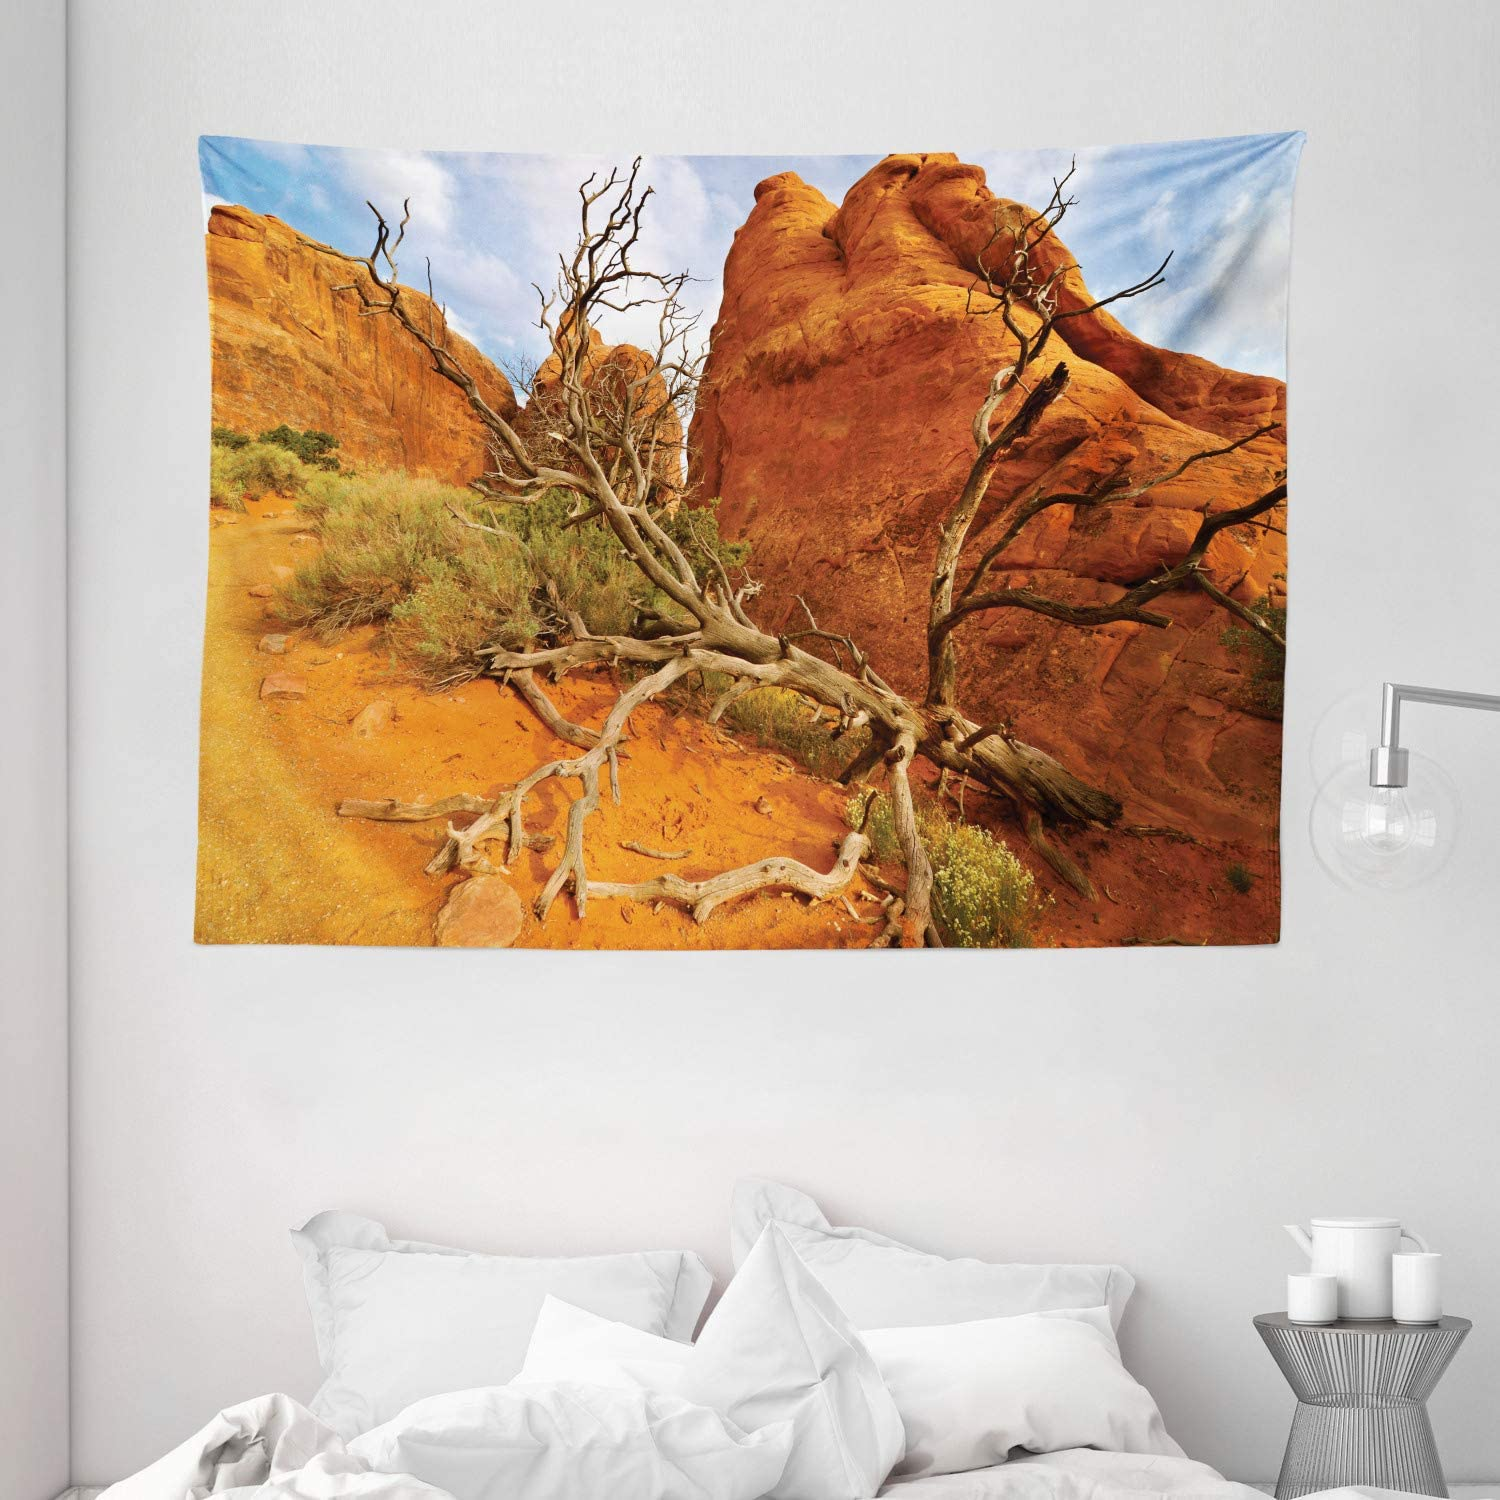 Ambesonne National Parks Home Decor Tapestry, Rock on Grand Canyon Monument Valley Heart of Nature Utah Photo, Wall Hanging for Bedroom Living Room Dorm, 80 W X 60 L Inches, Orange Blue